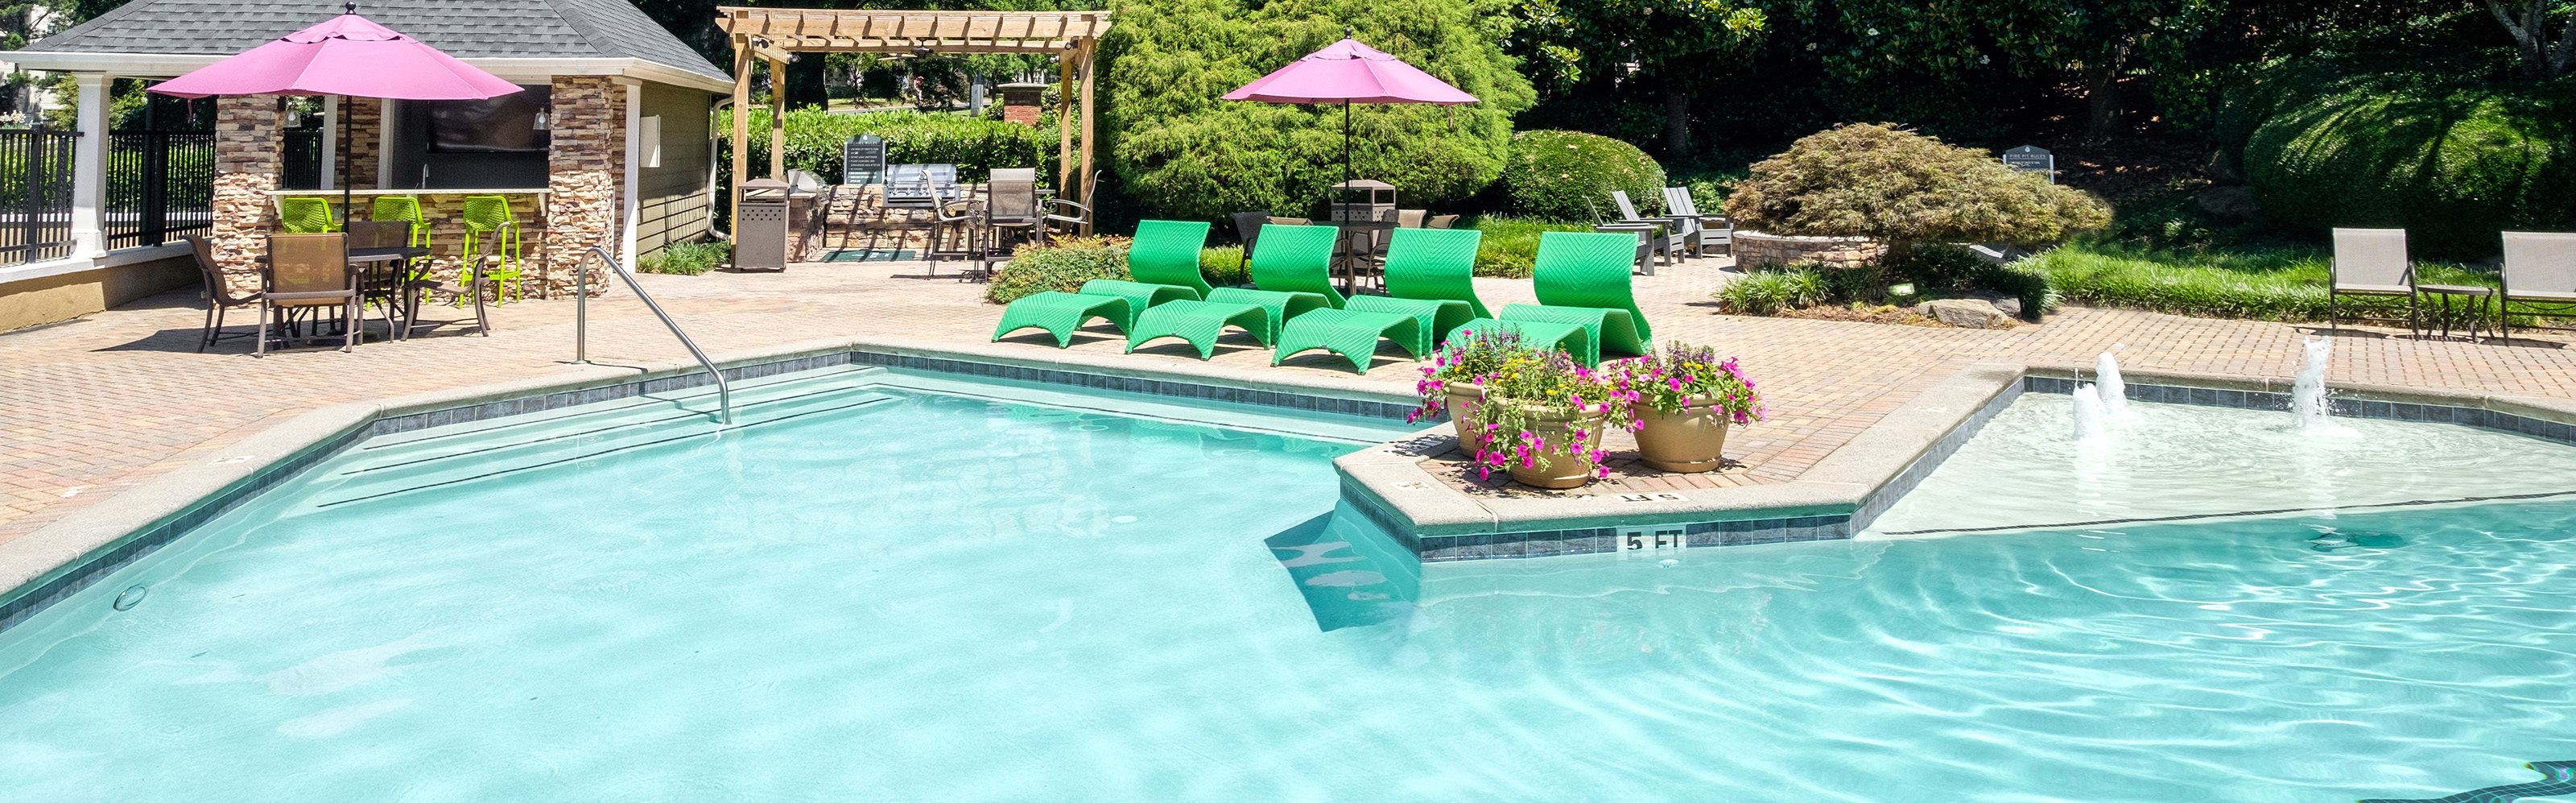 Evergreen Lenox Park - Banner photo of pool